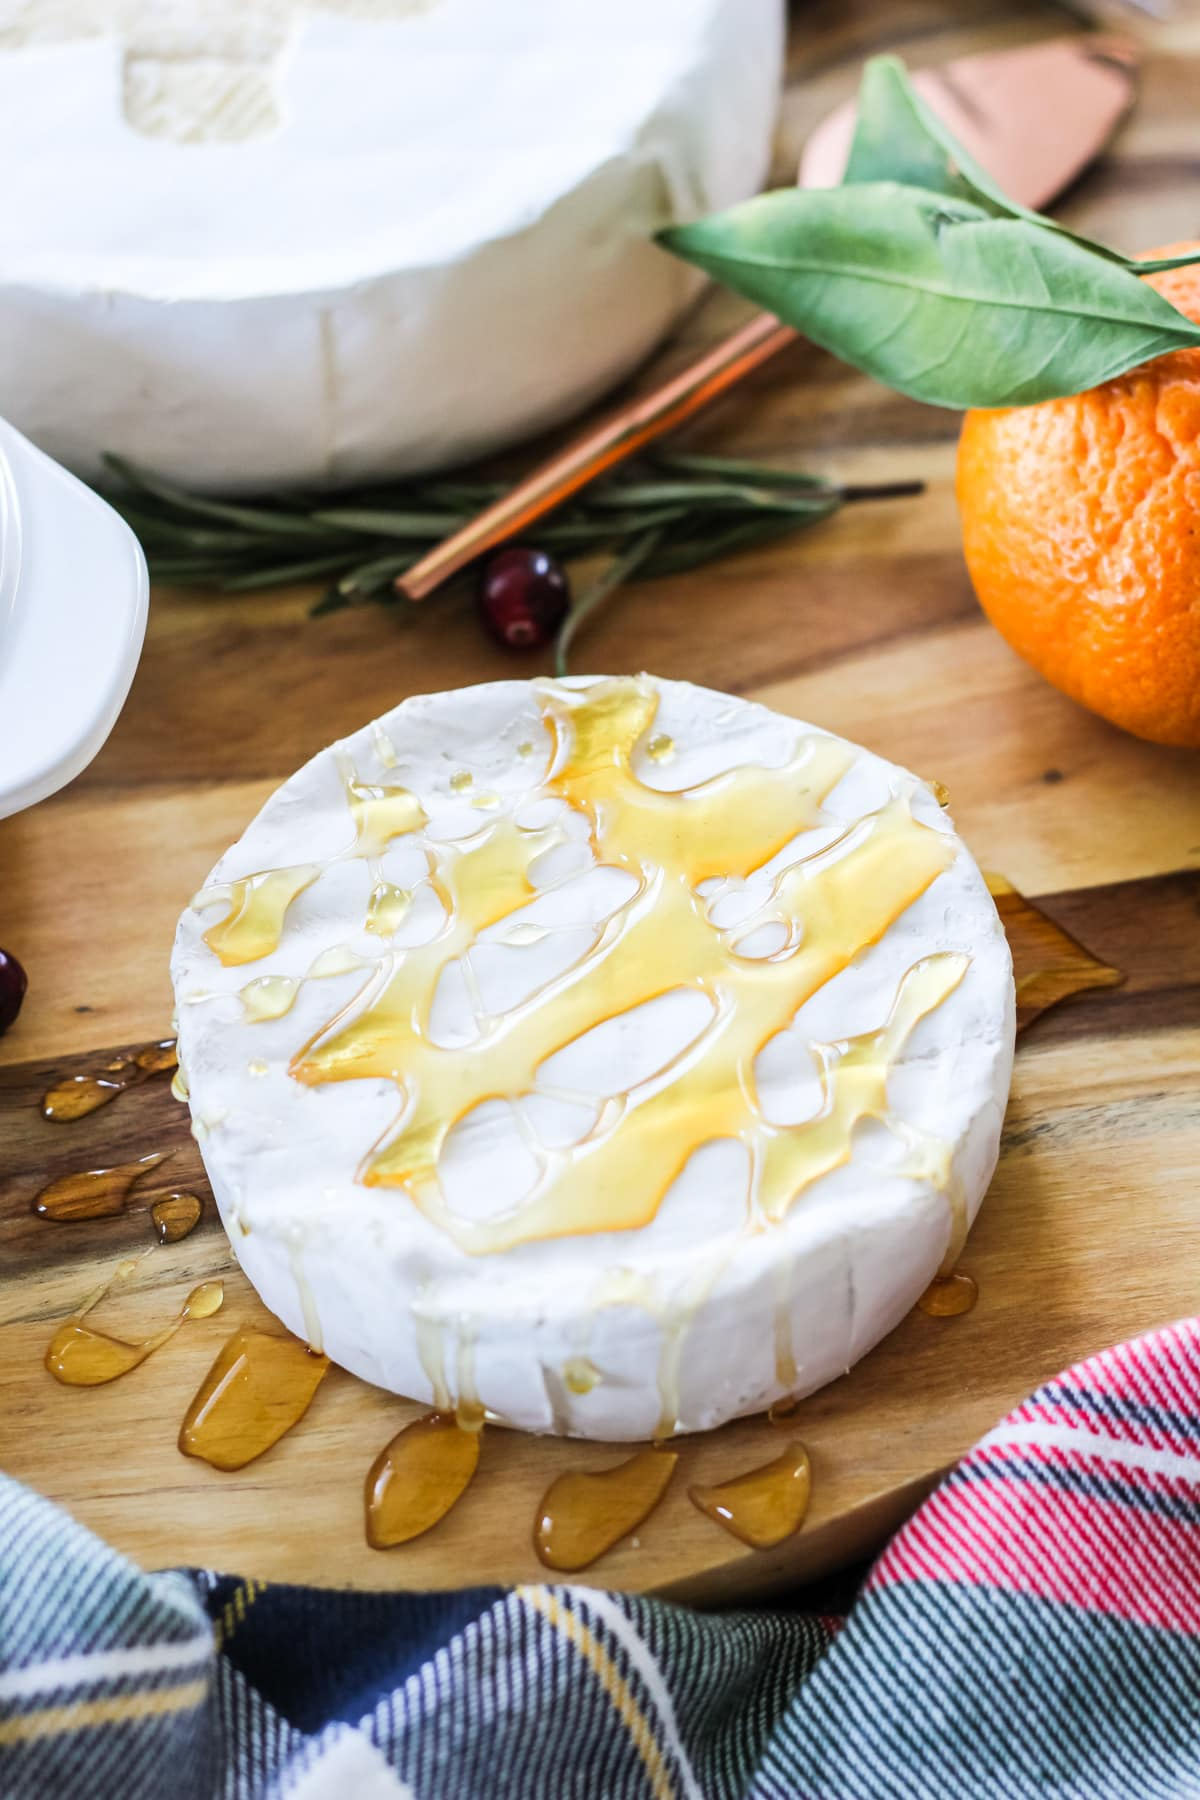 A wheel of Brie cheese drizzled with honey